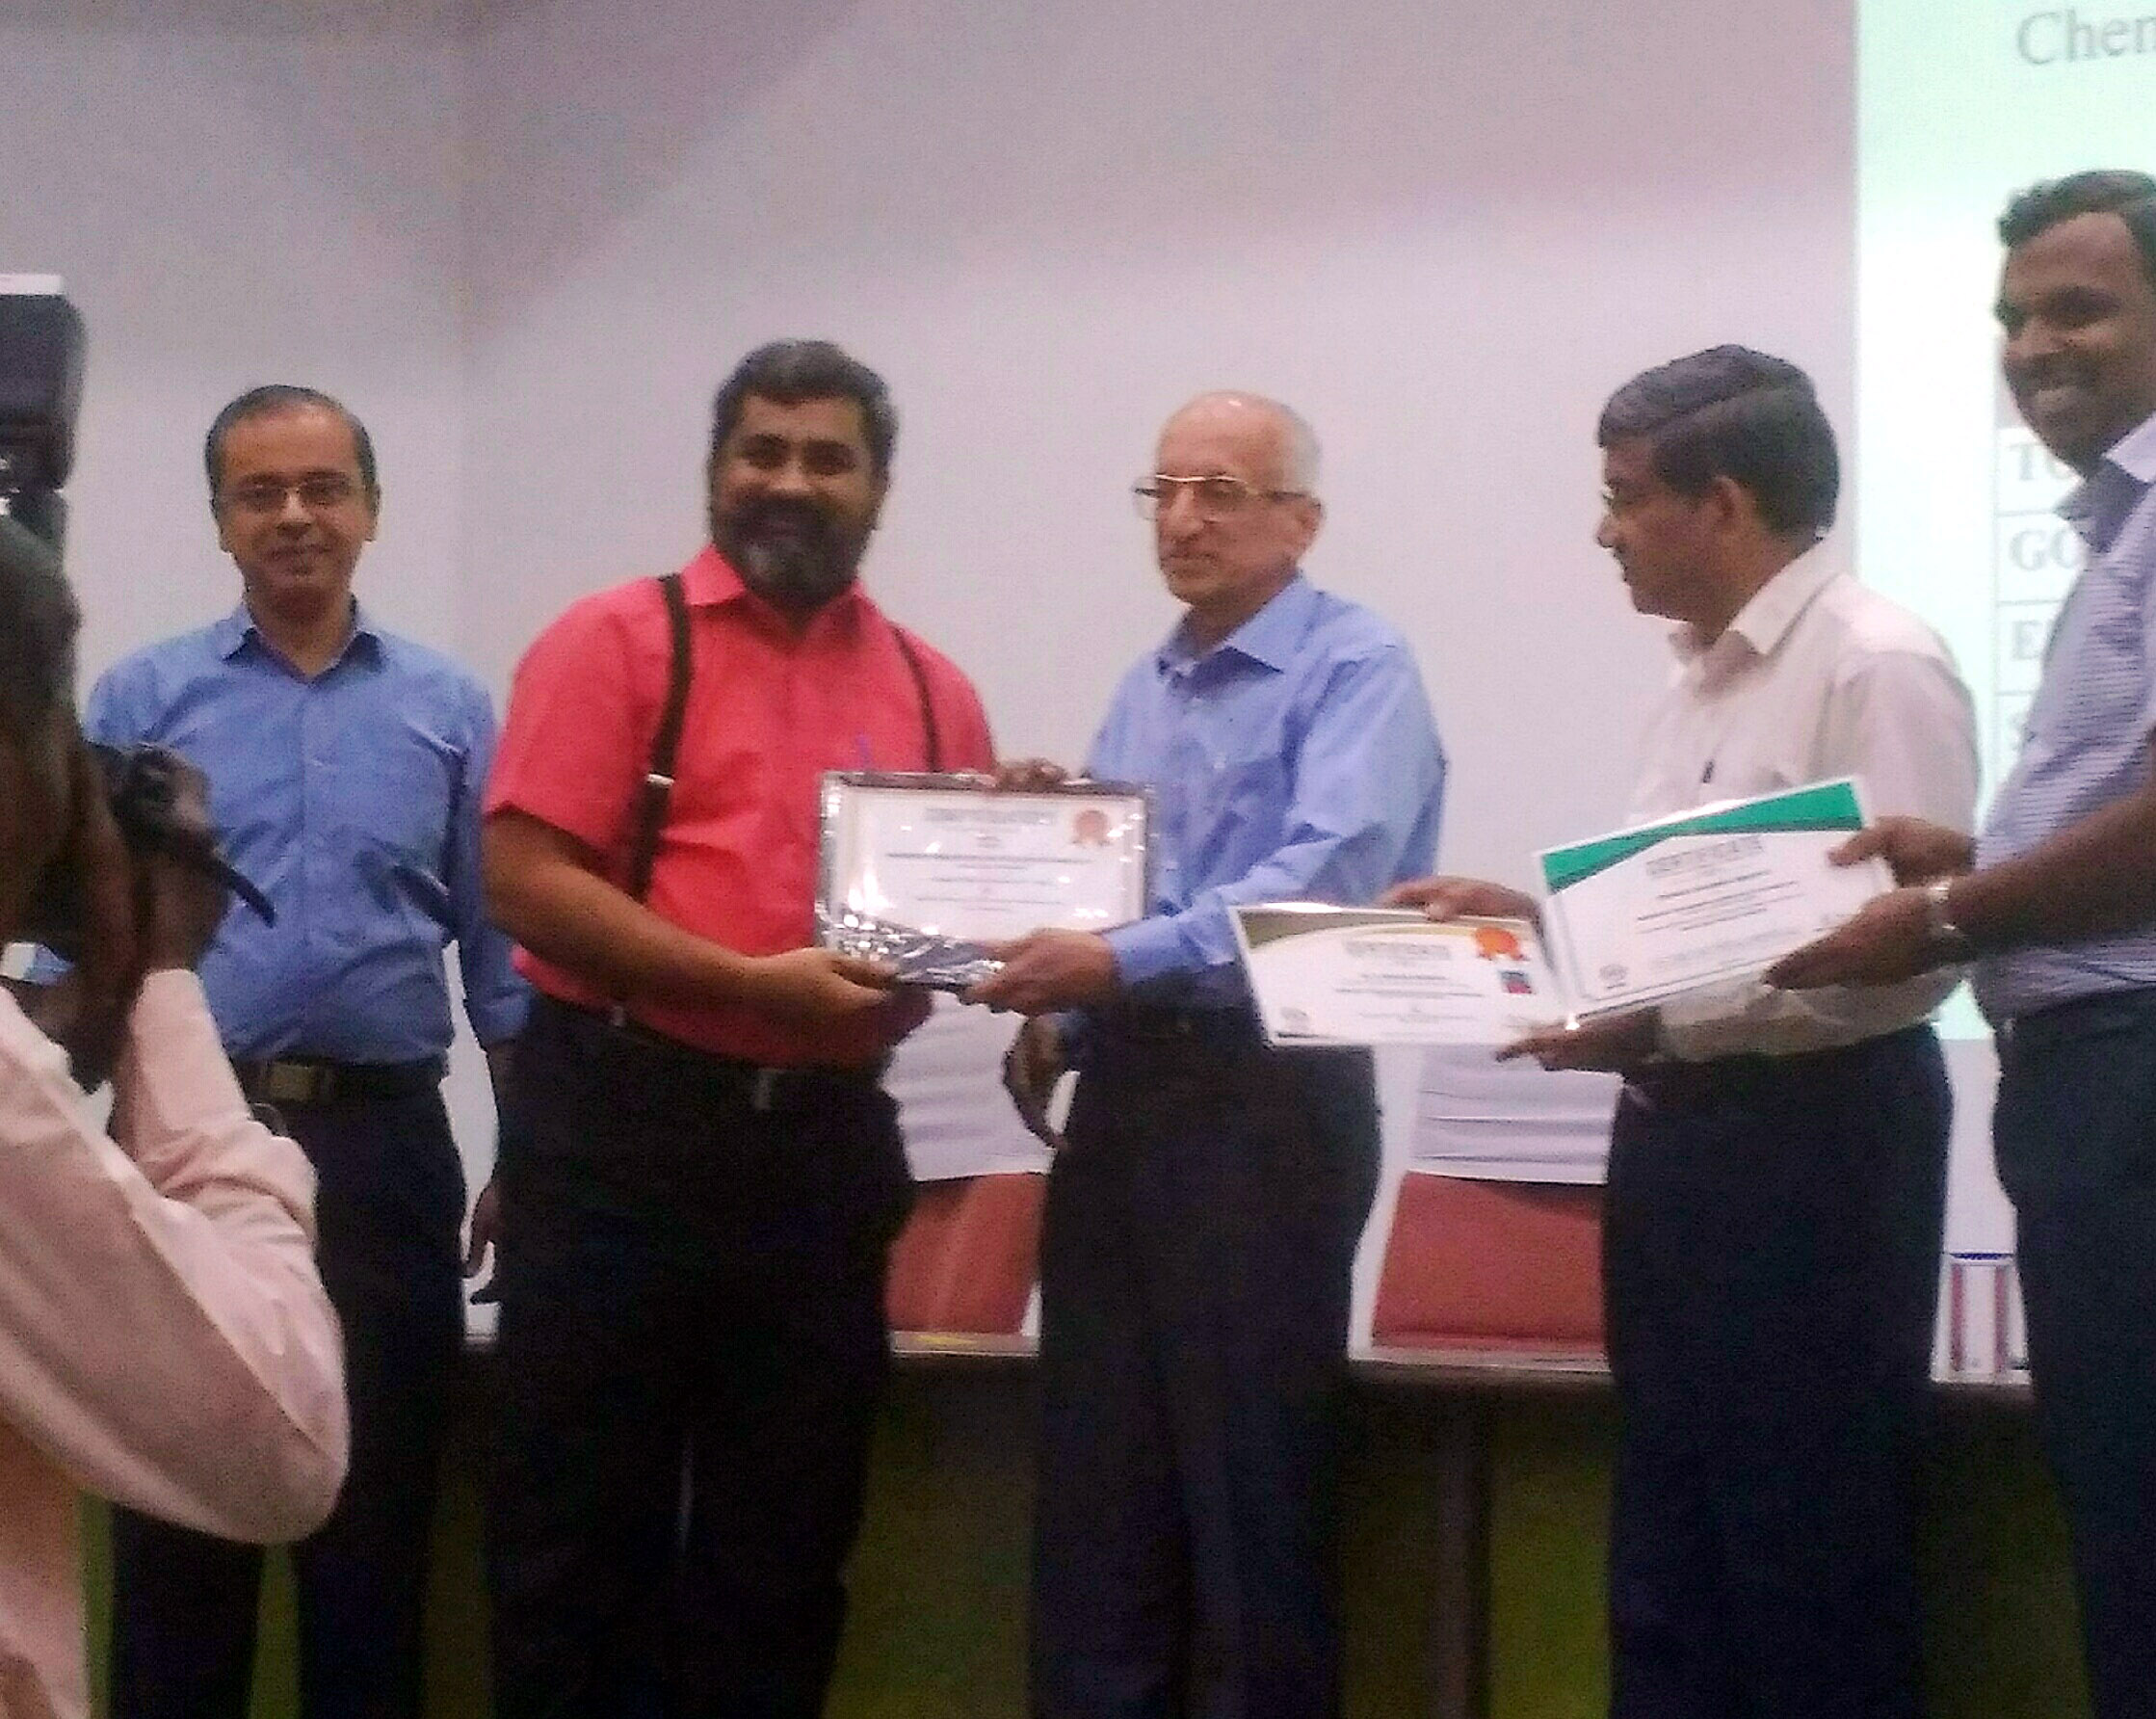 Prof.M.Y.Bhanumurthy of VVIT receiving Plaque and Certification of Appreciation from Prof. Ananth Ex Director IIT Madras